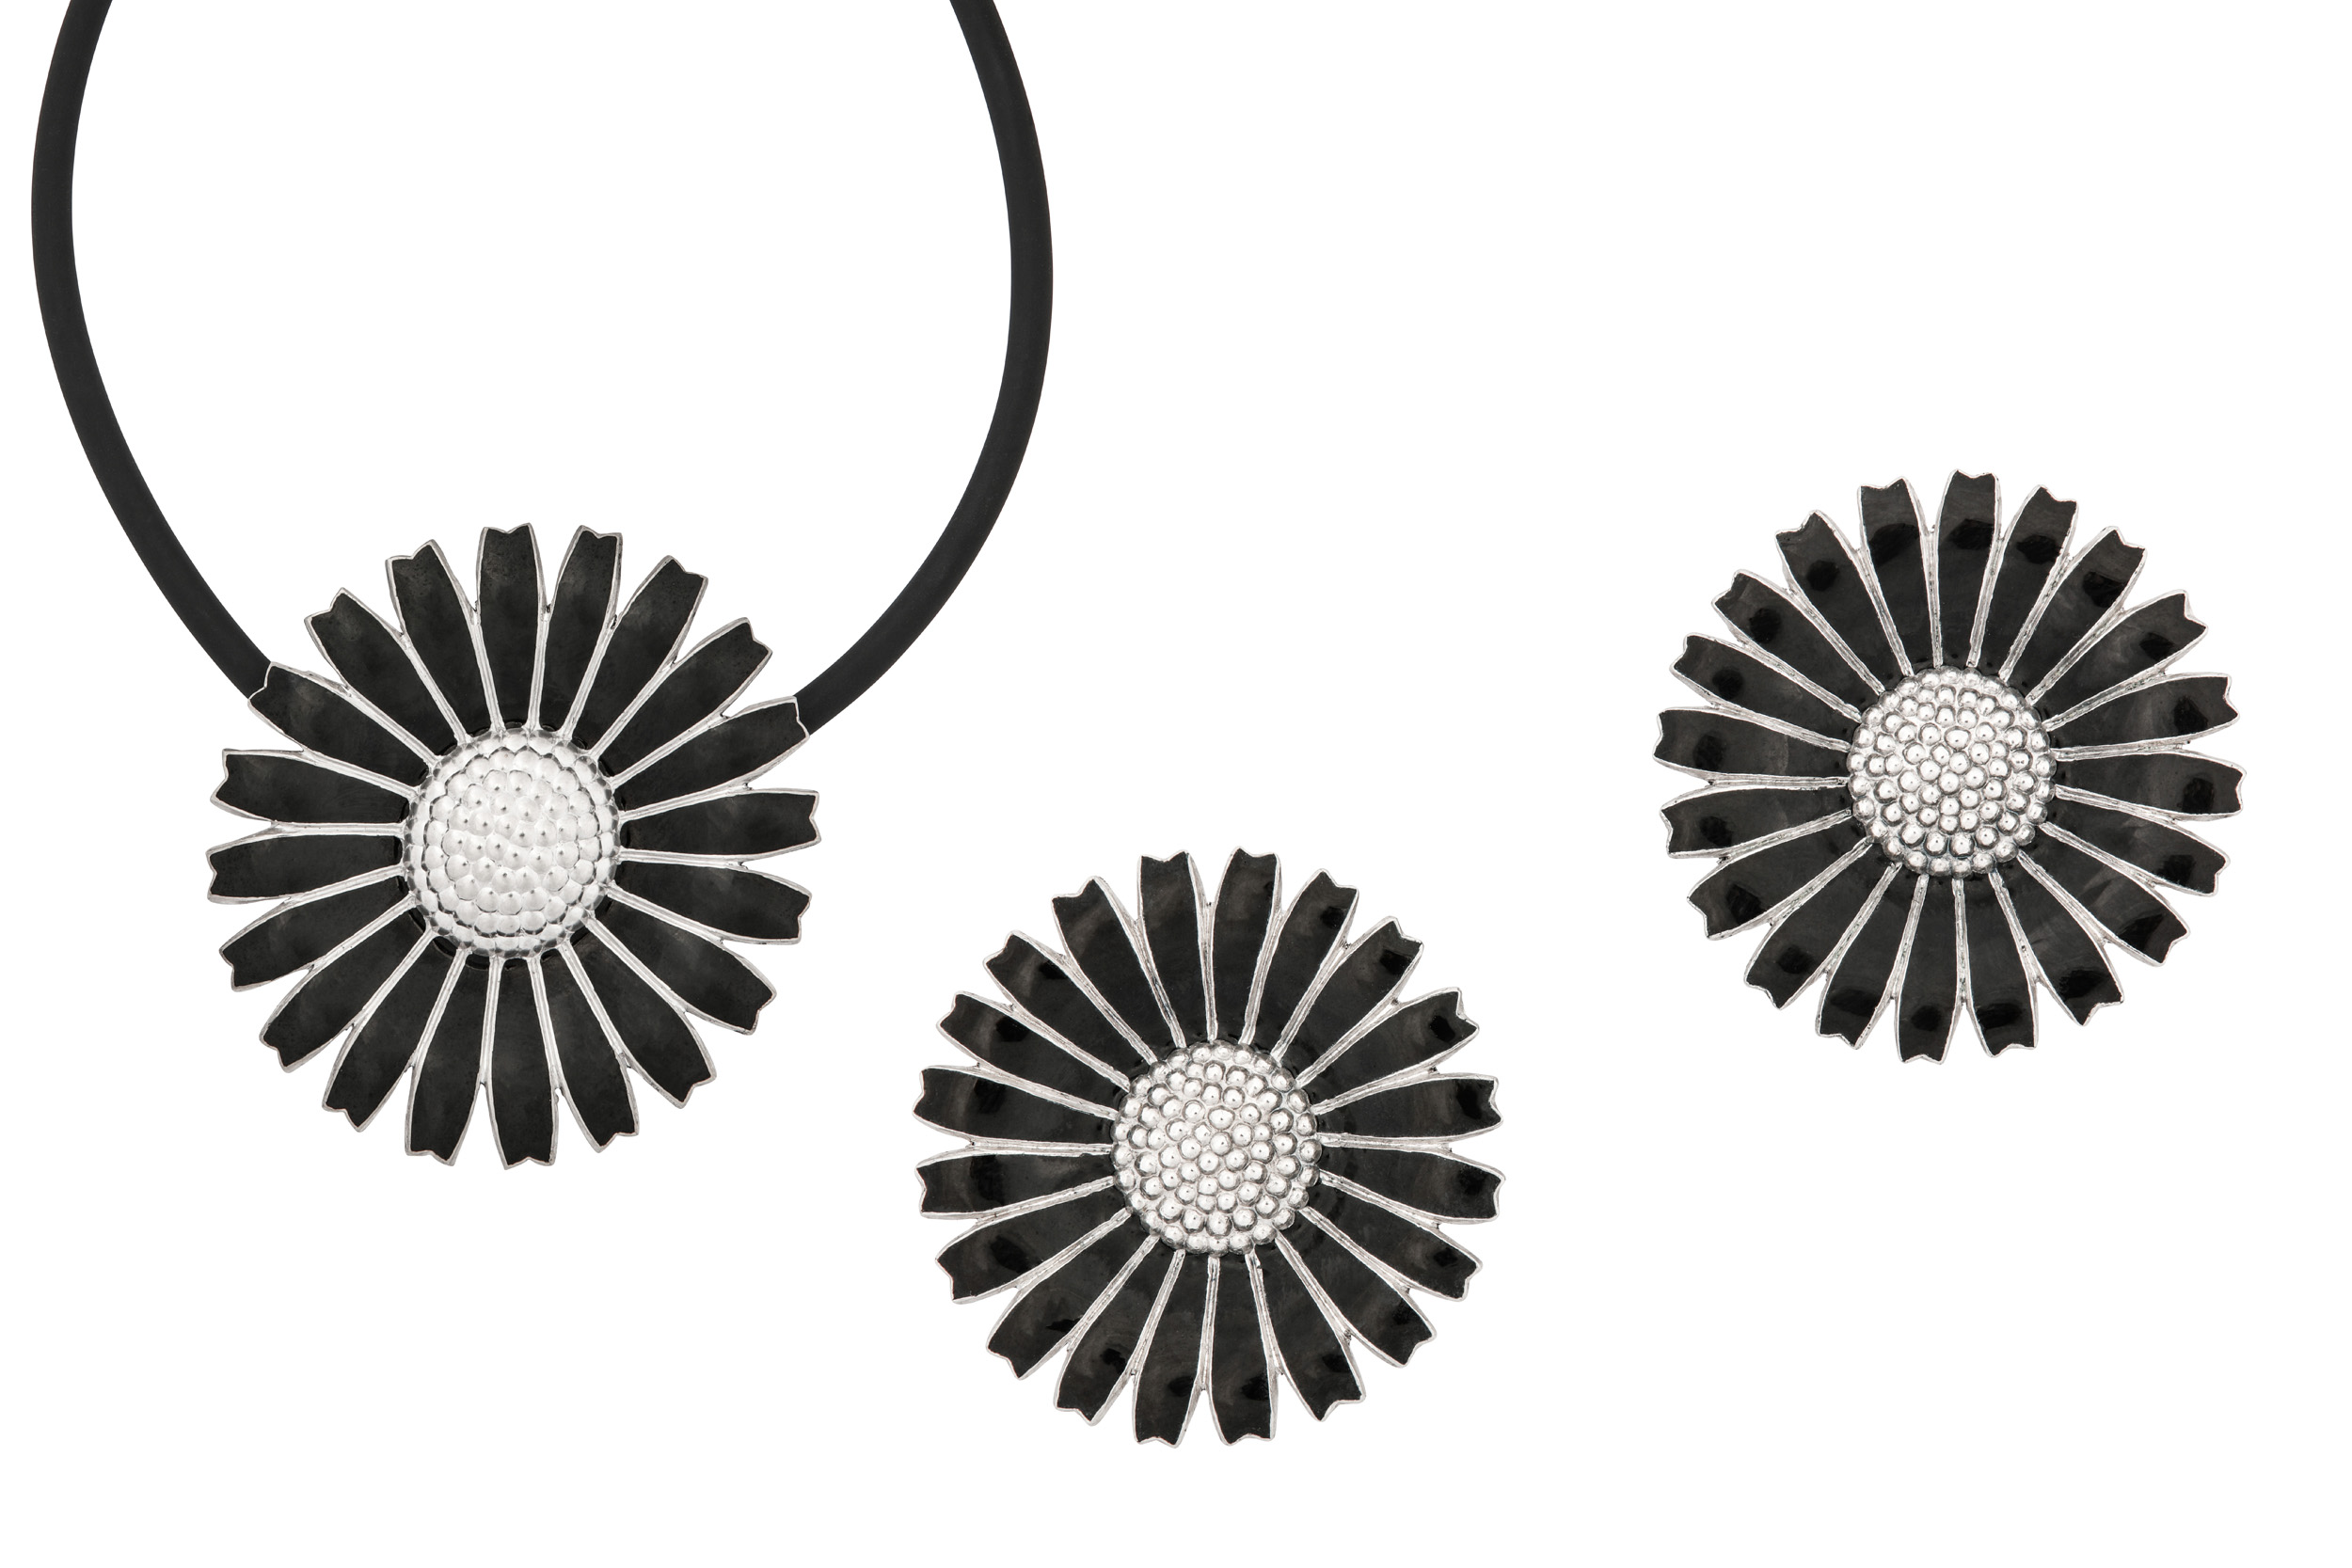 Lot 56 - A black enamel 'Daisy' pendant and earclips, by Georg Jensen